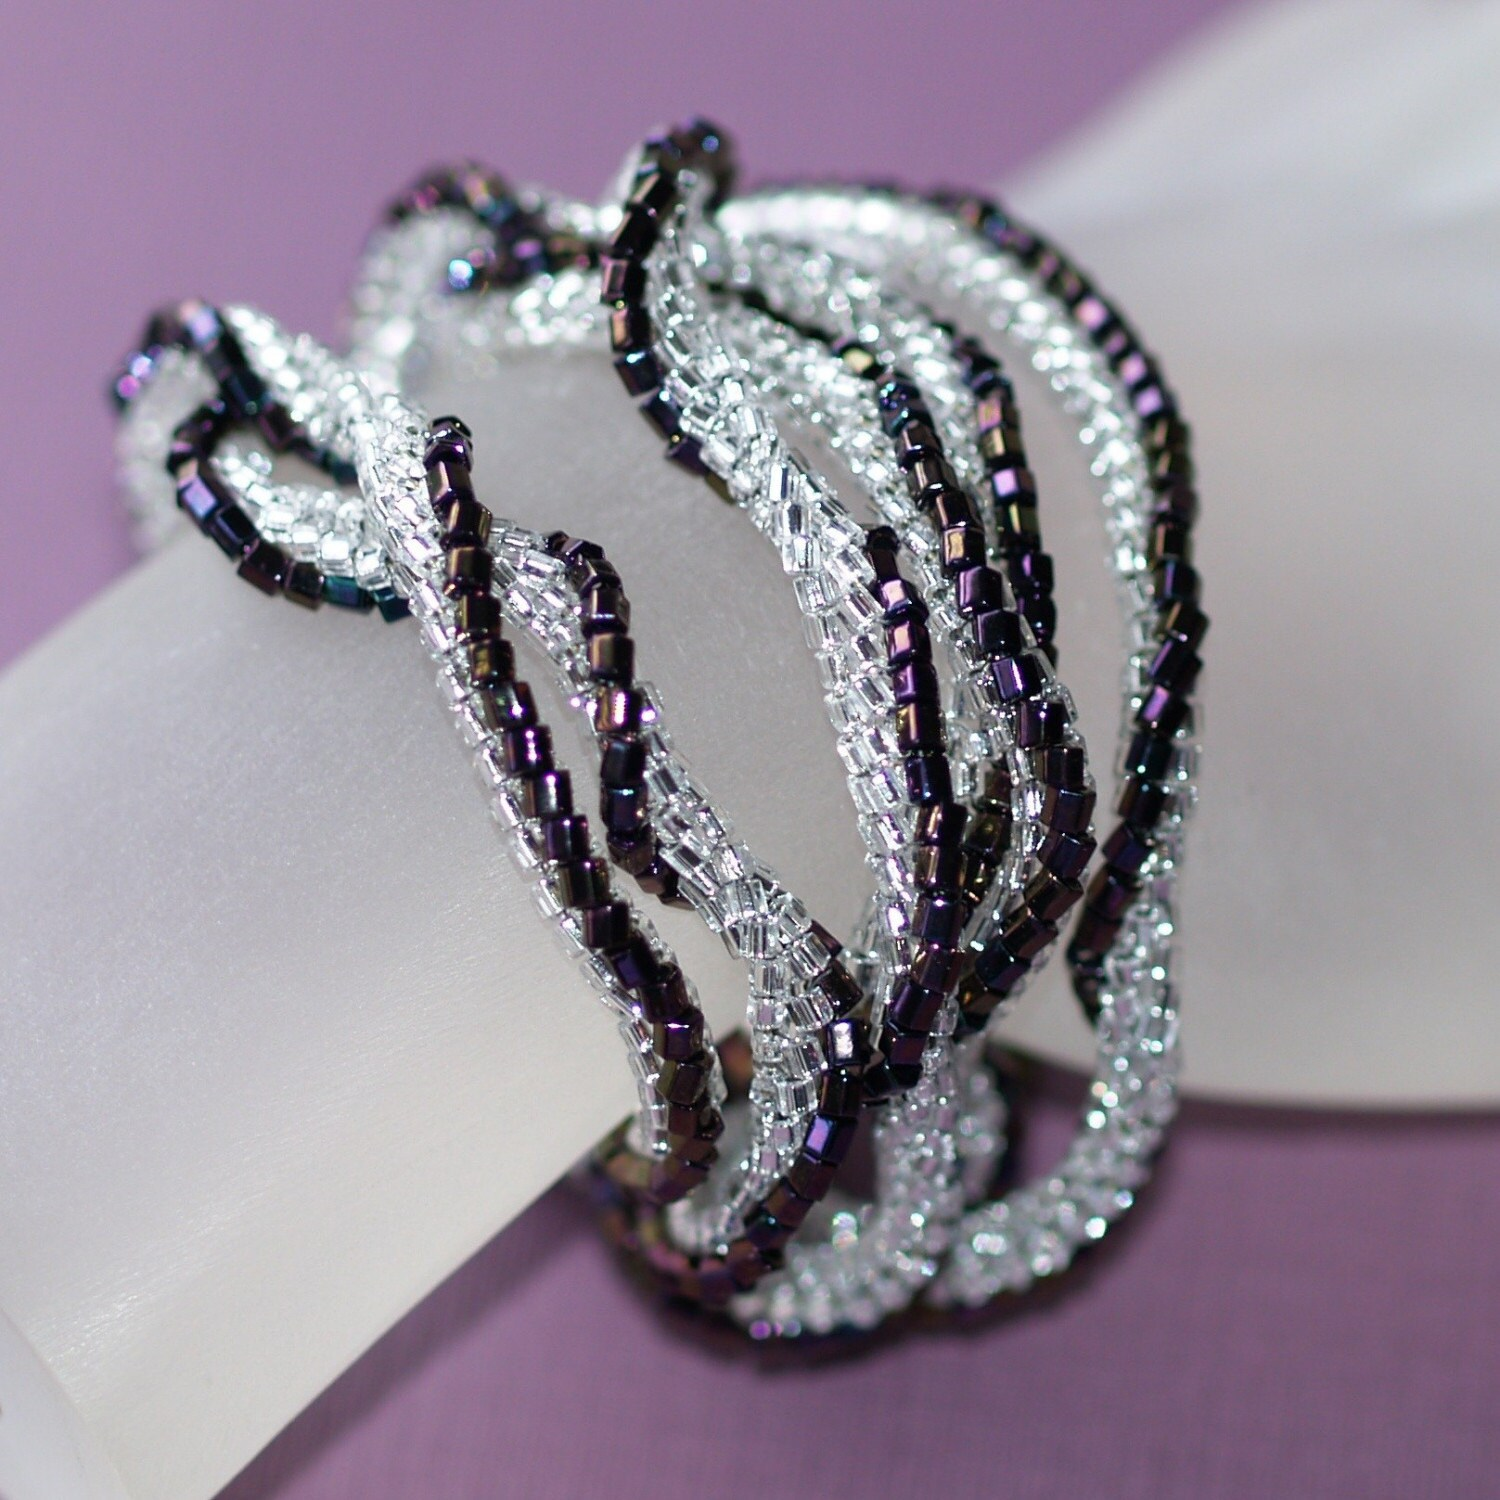 Zuleika - Twisted Ndebele Rope in Silver and Plum (3072)